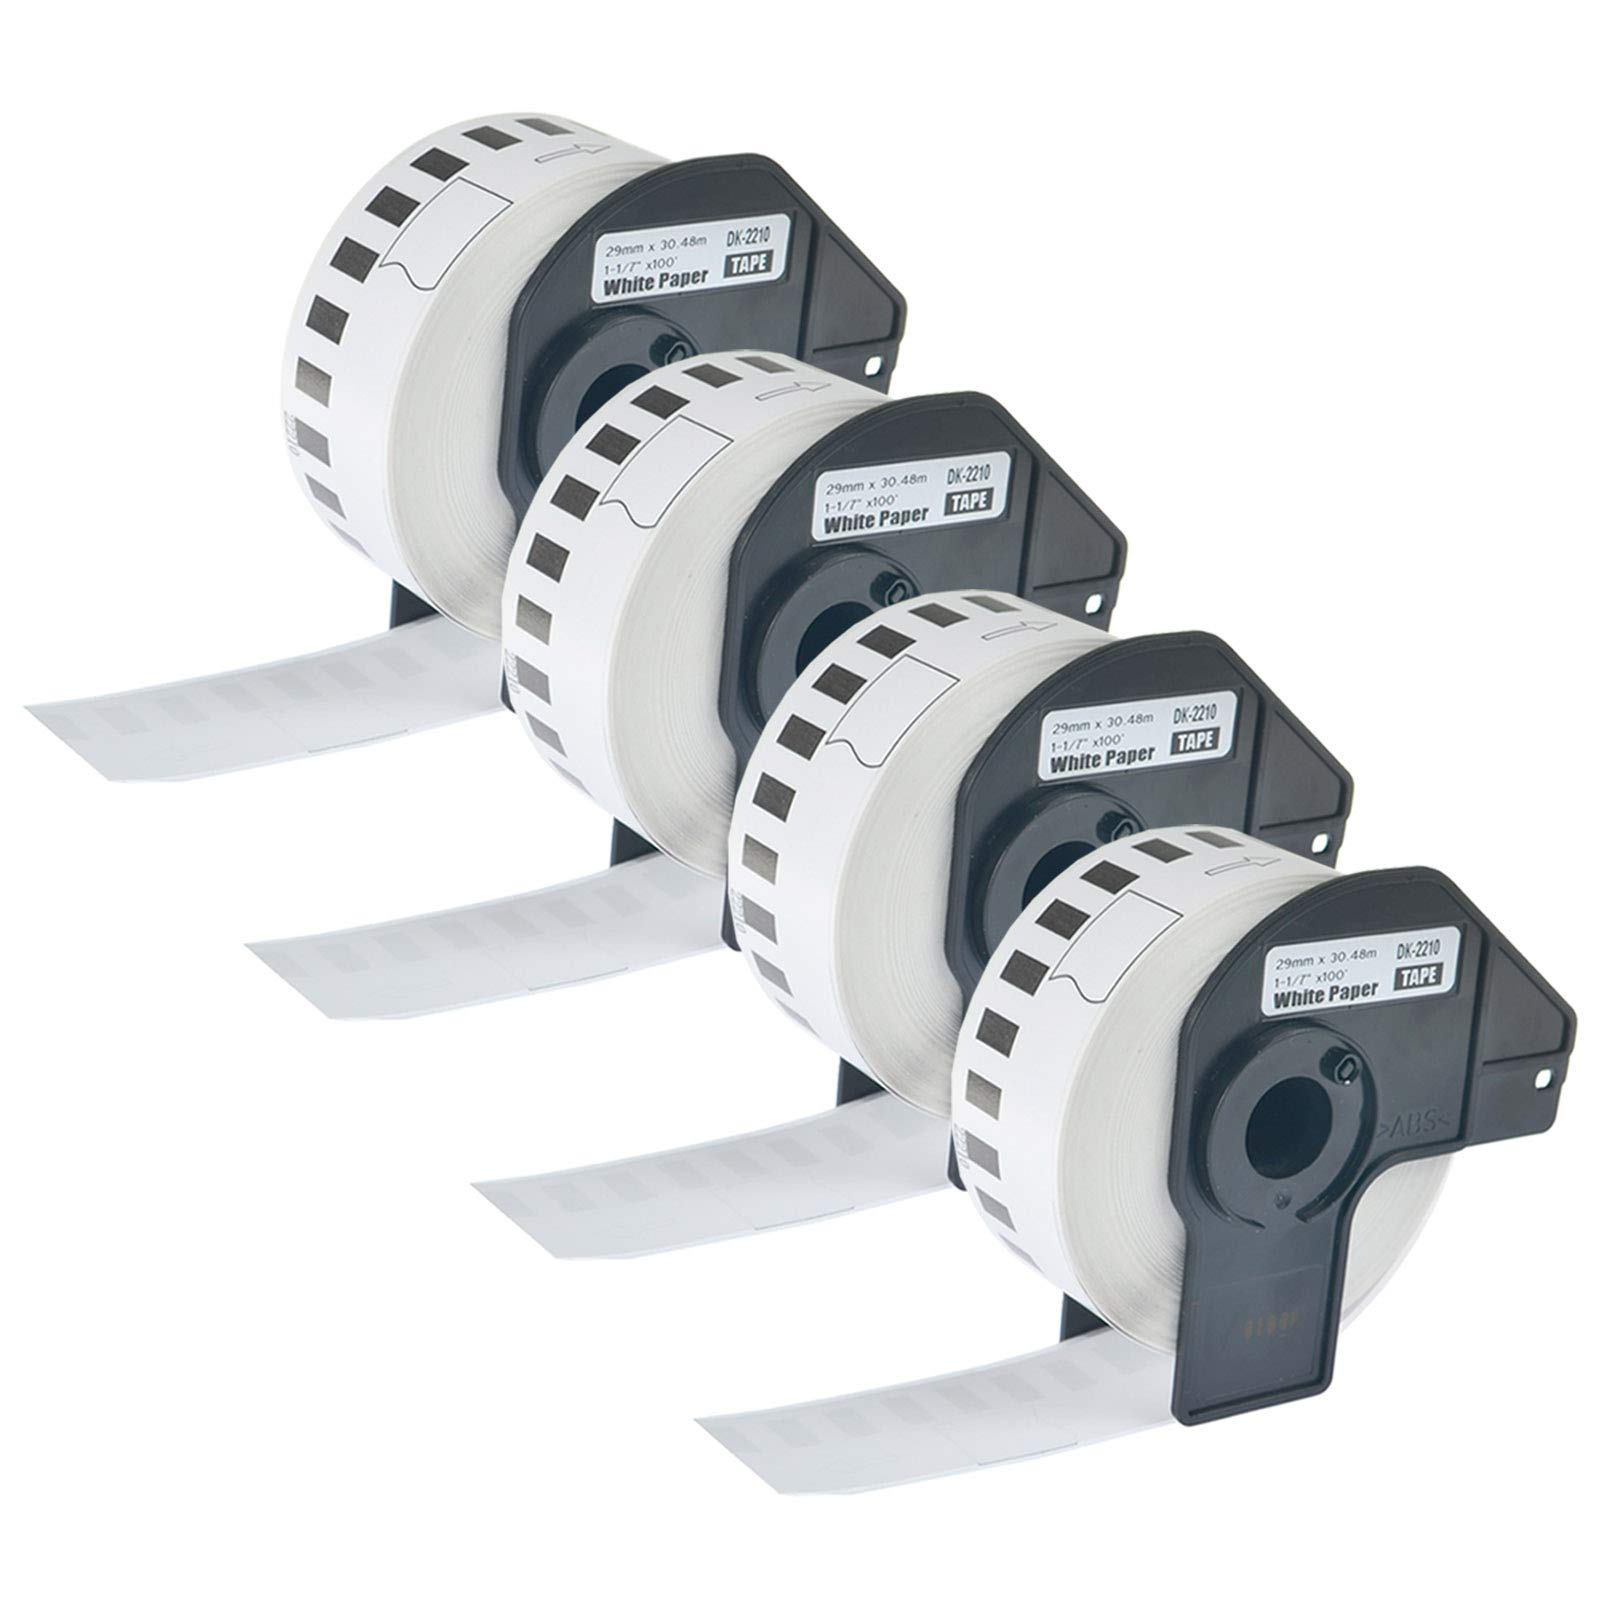 KCYMTONER 4 Rolls of Compatible Brother DK-2210 DK2210 Black on White Continuous Length Shipping Label Paper for P-Touch QL-550 QL-560 QL-1050 QL-1050N QL-1060N Series Printer,29mm x 30.48m /roll